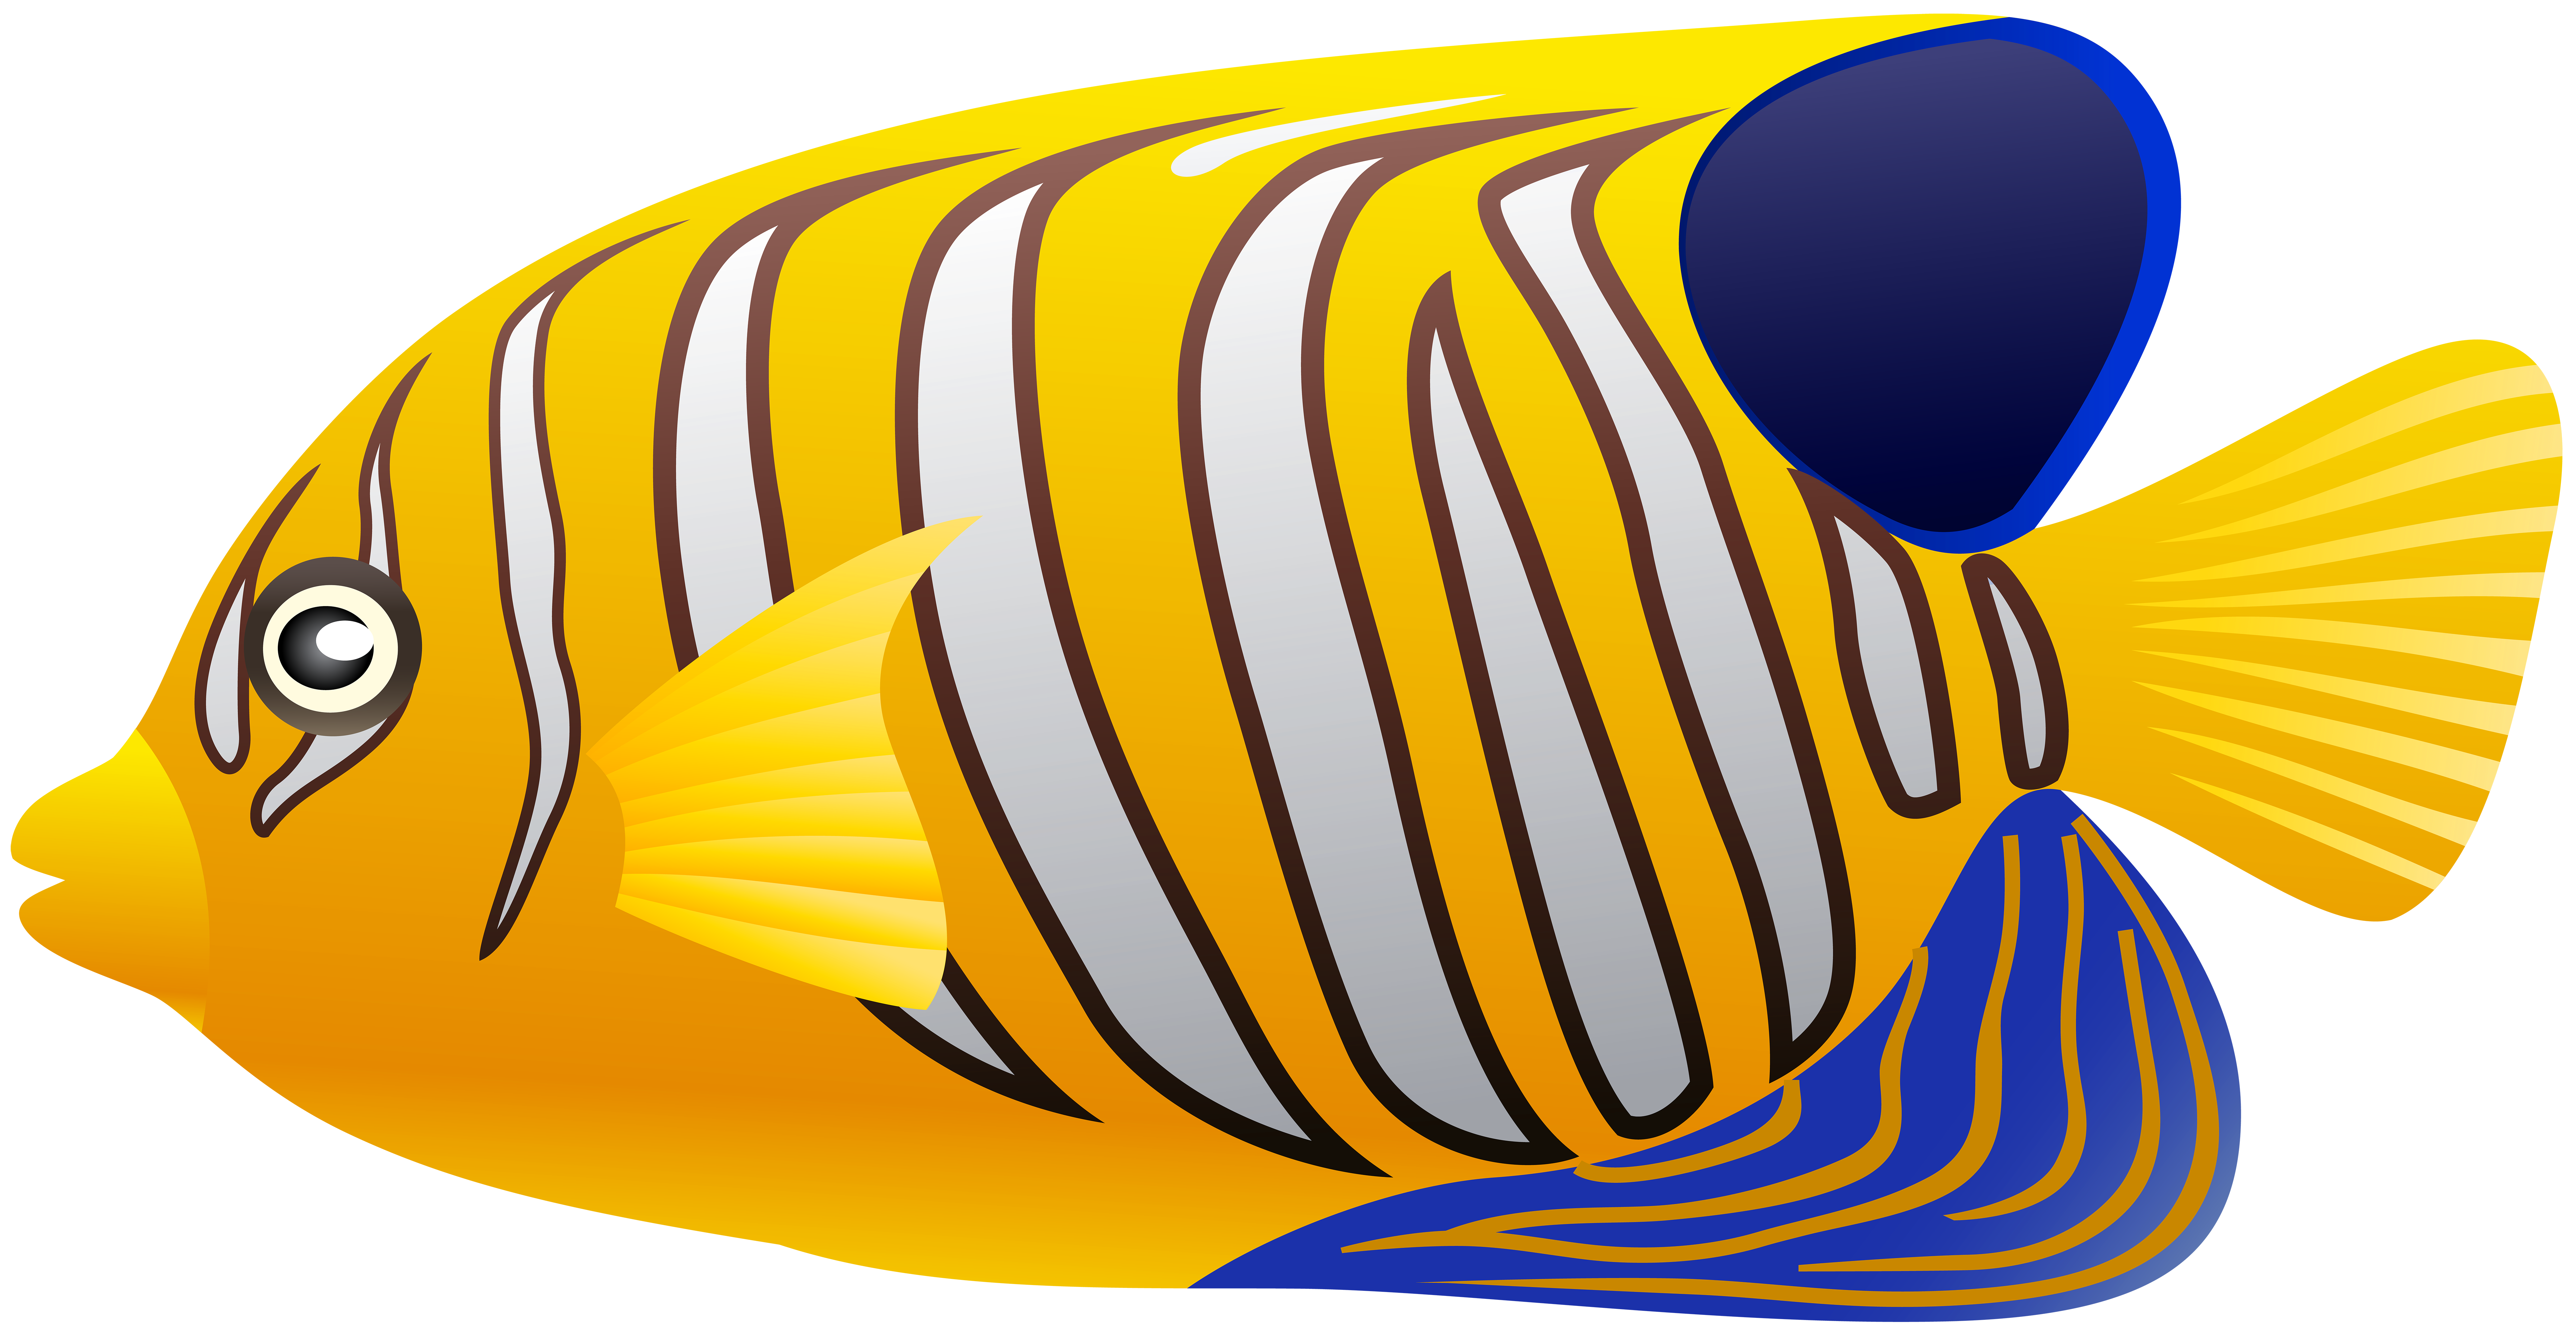 Fish and vegetables clipart banner free Yellow Fish PNG Clip Art - Best WEB Clipart banner free